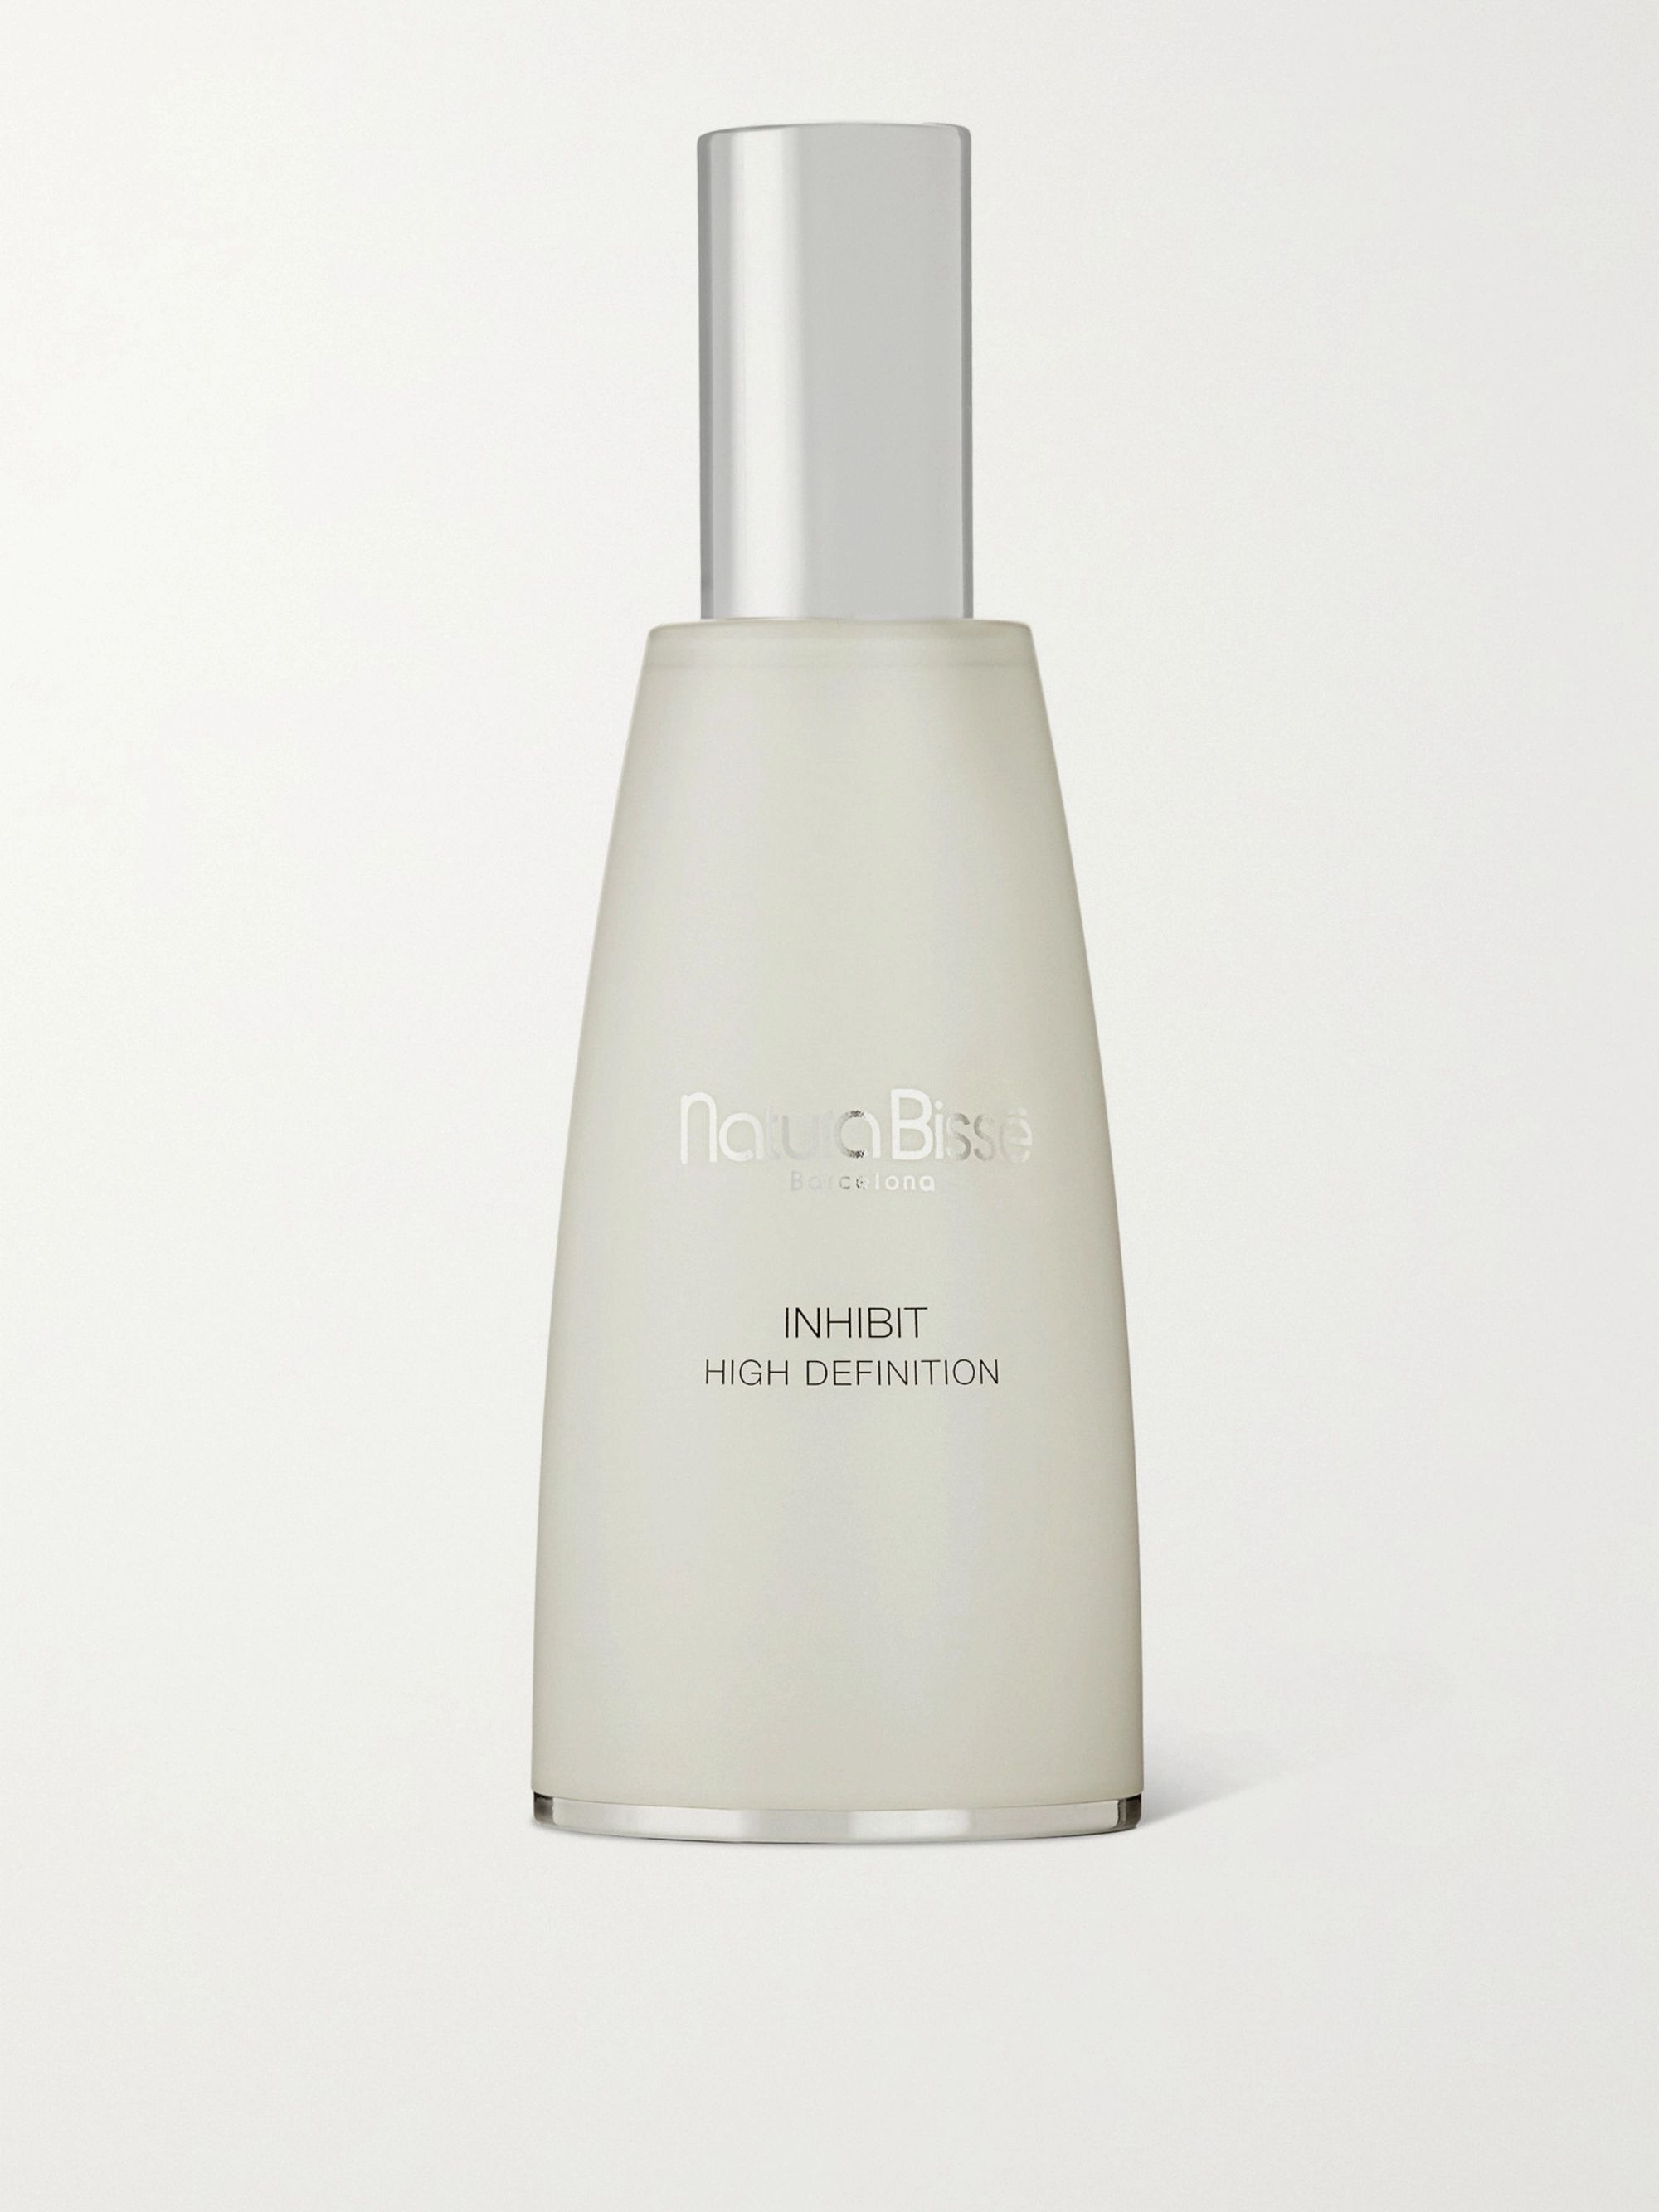 Natura Bissé Inhibit High Definition Serum, 60ml